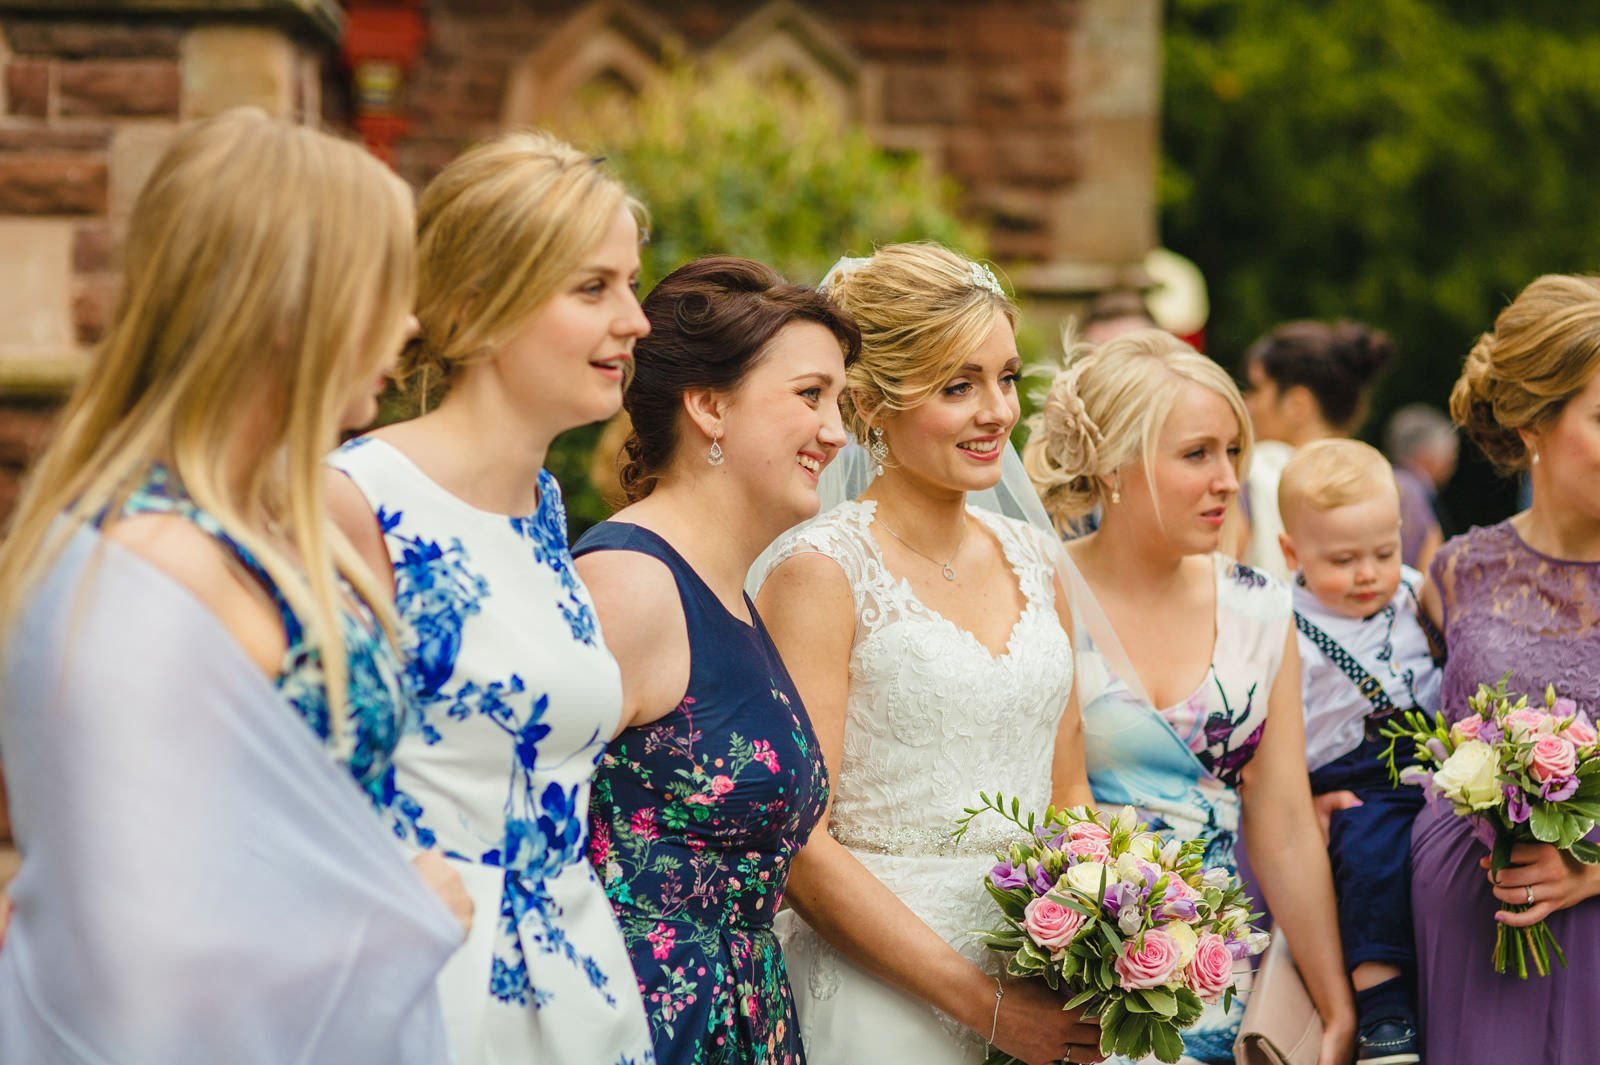 Millers Of Netley wedding, Dorrington, Shrewsbury | Emma + Ben 26